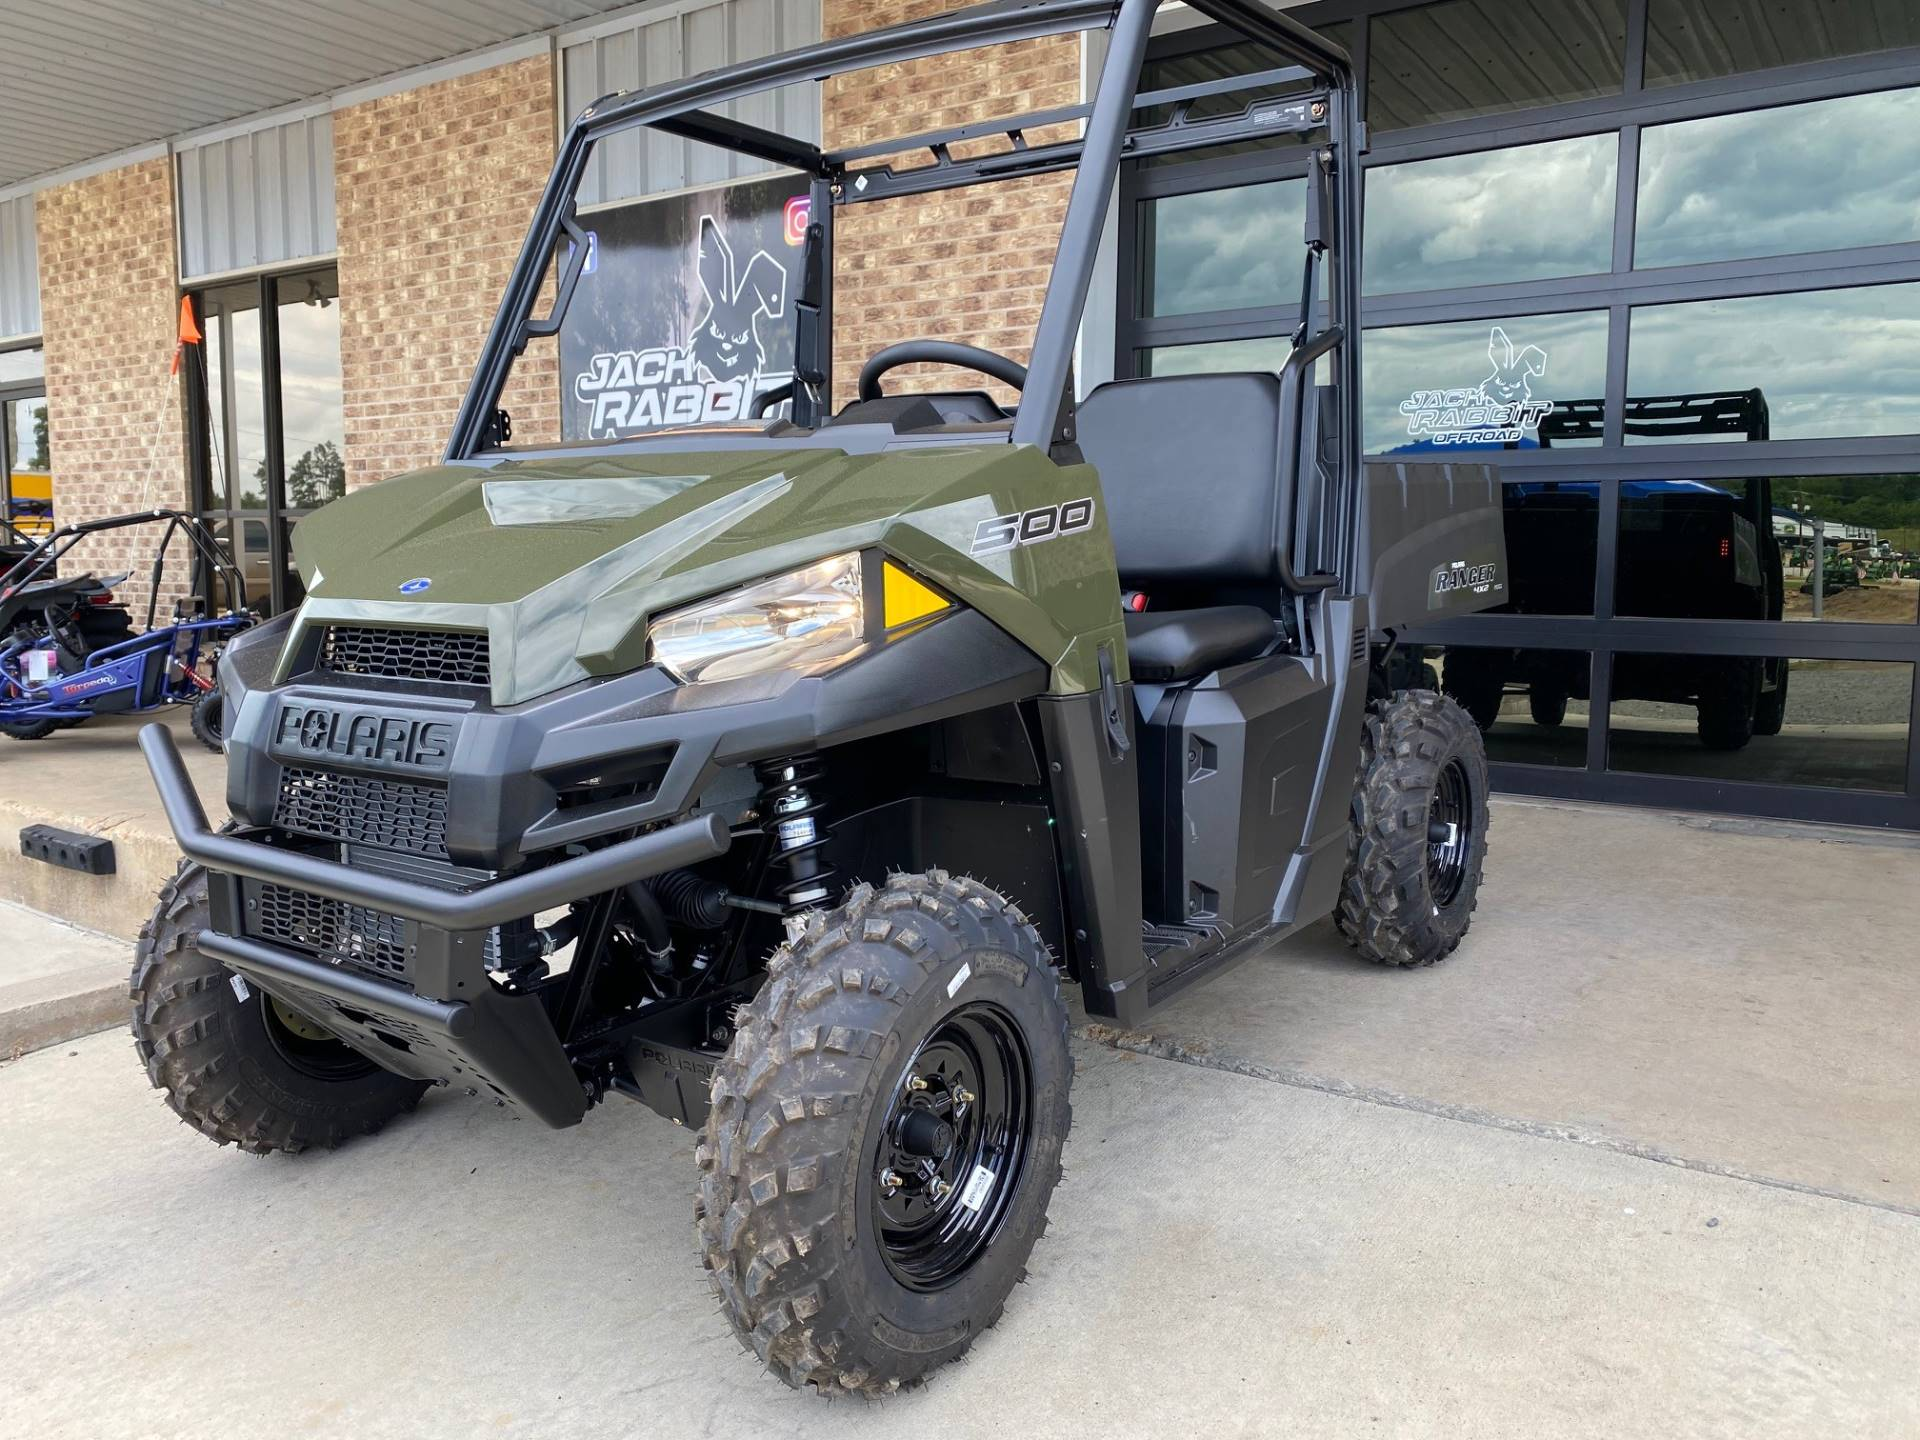 2019 Polaris Ranger 500 4x2 in Marshall, Texas - Photo 4